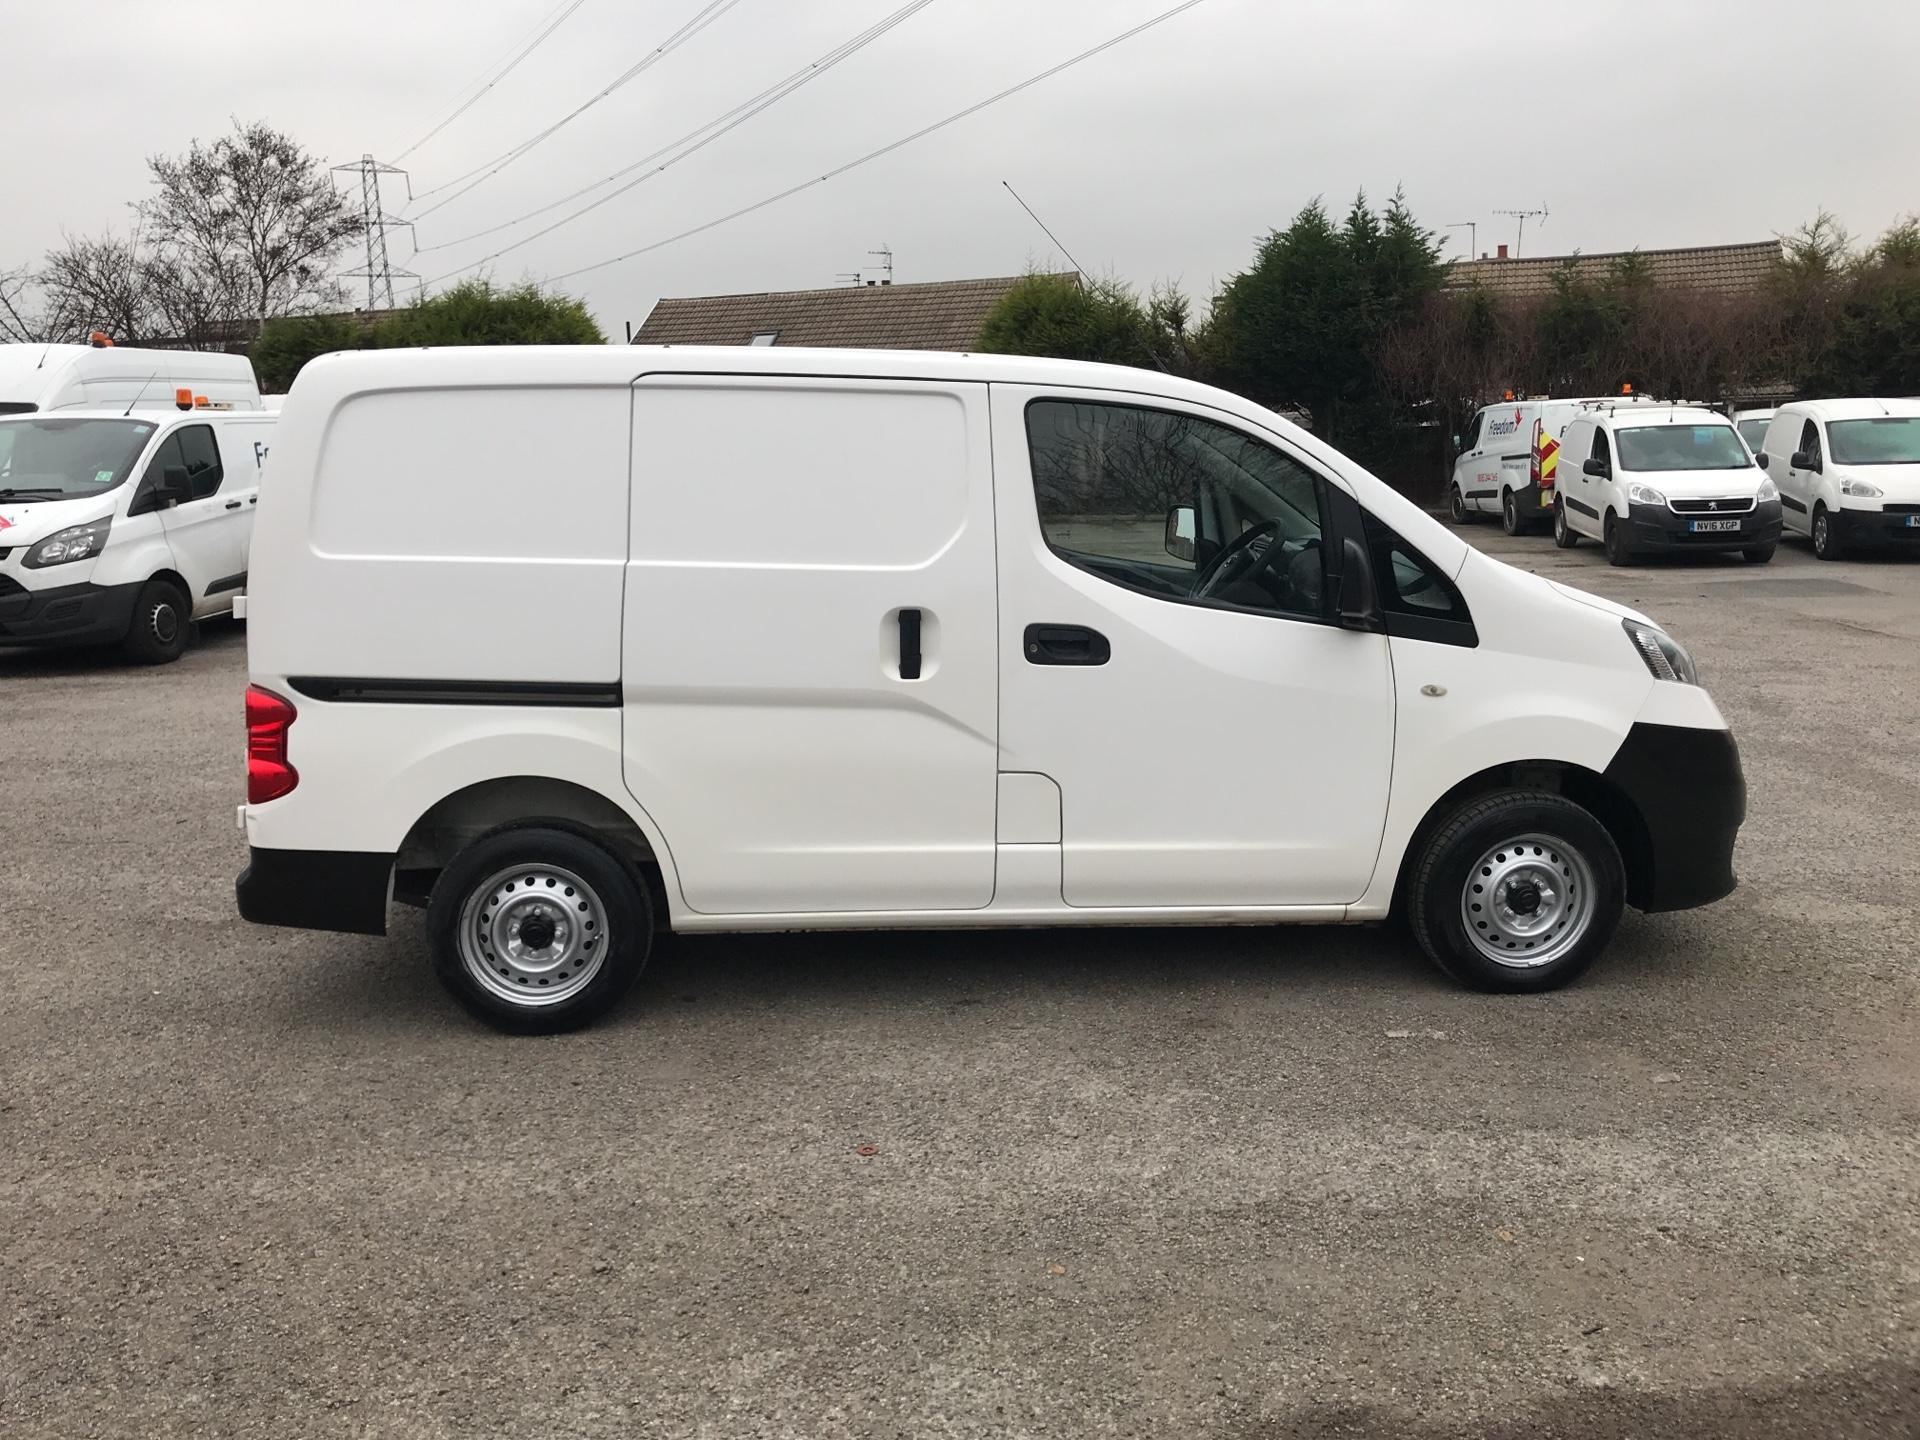 2012 Nissan Nv200 1.5 Dci 89 Se Van EURO 5 -*VALUE RANGE VEHICLE - CONDITION REFLECTED IN PRICE* (SA62MVR) Image 2